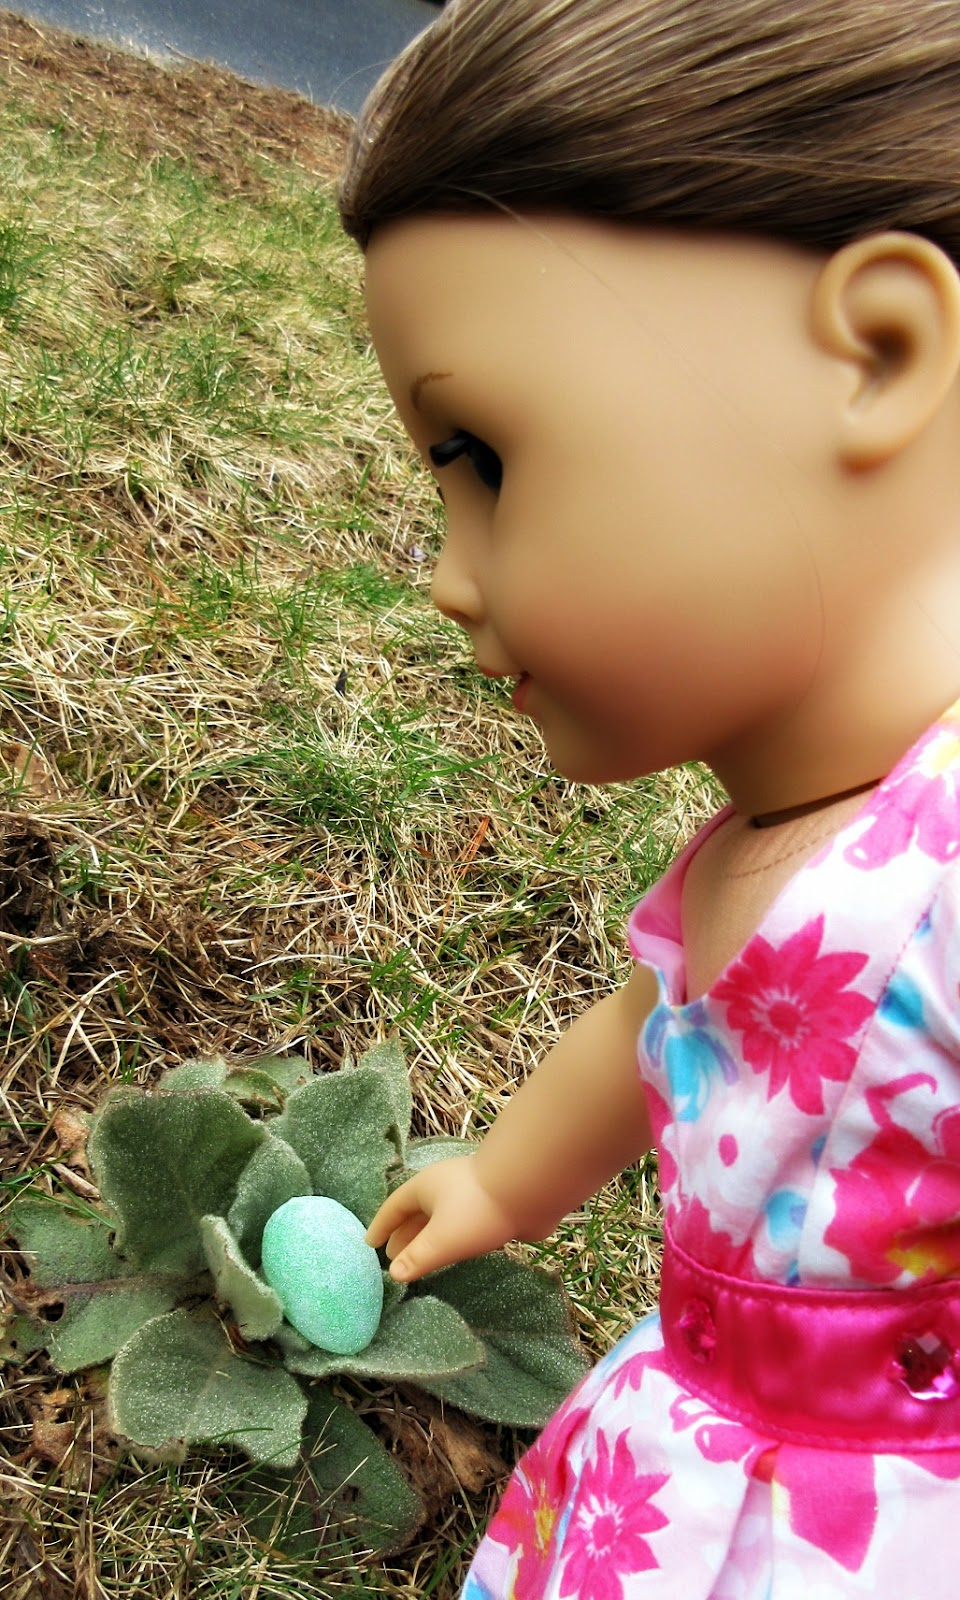 American girl doll Easter egg hunt.jpg